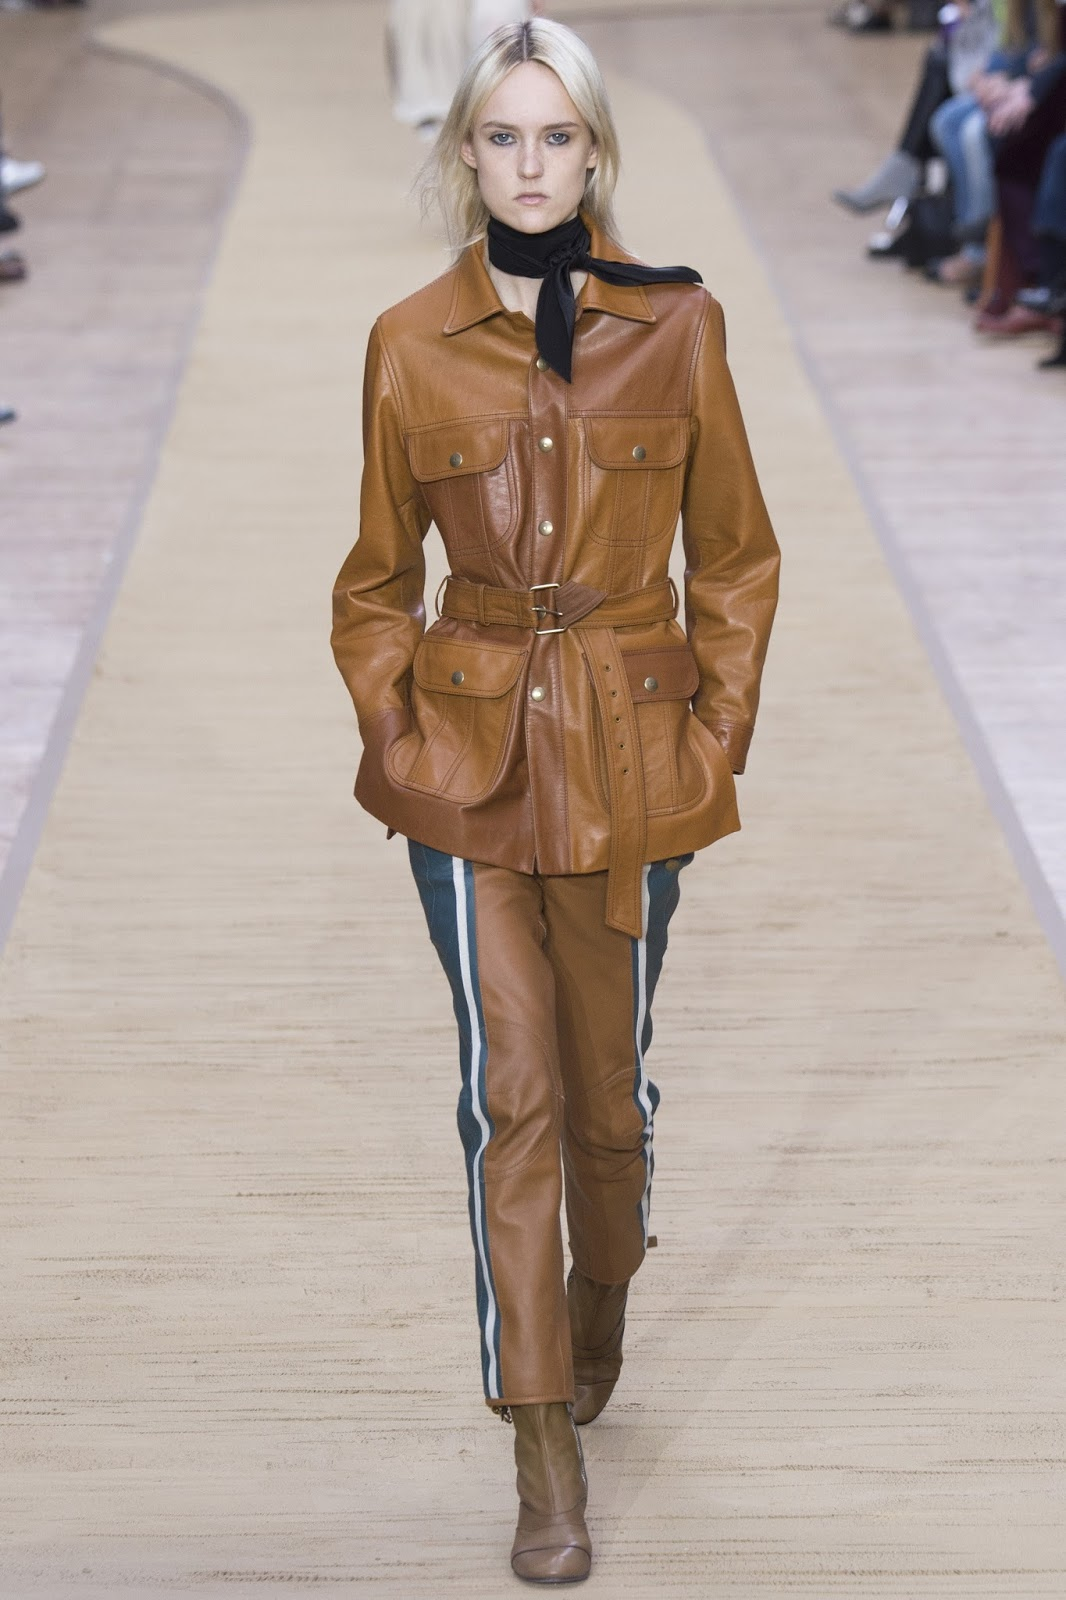 Chloé's Autumn/Winter 2016 Style Muse: Anne-France Dautheville